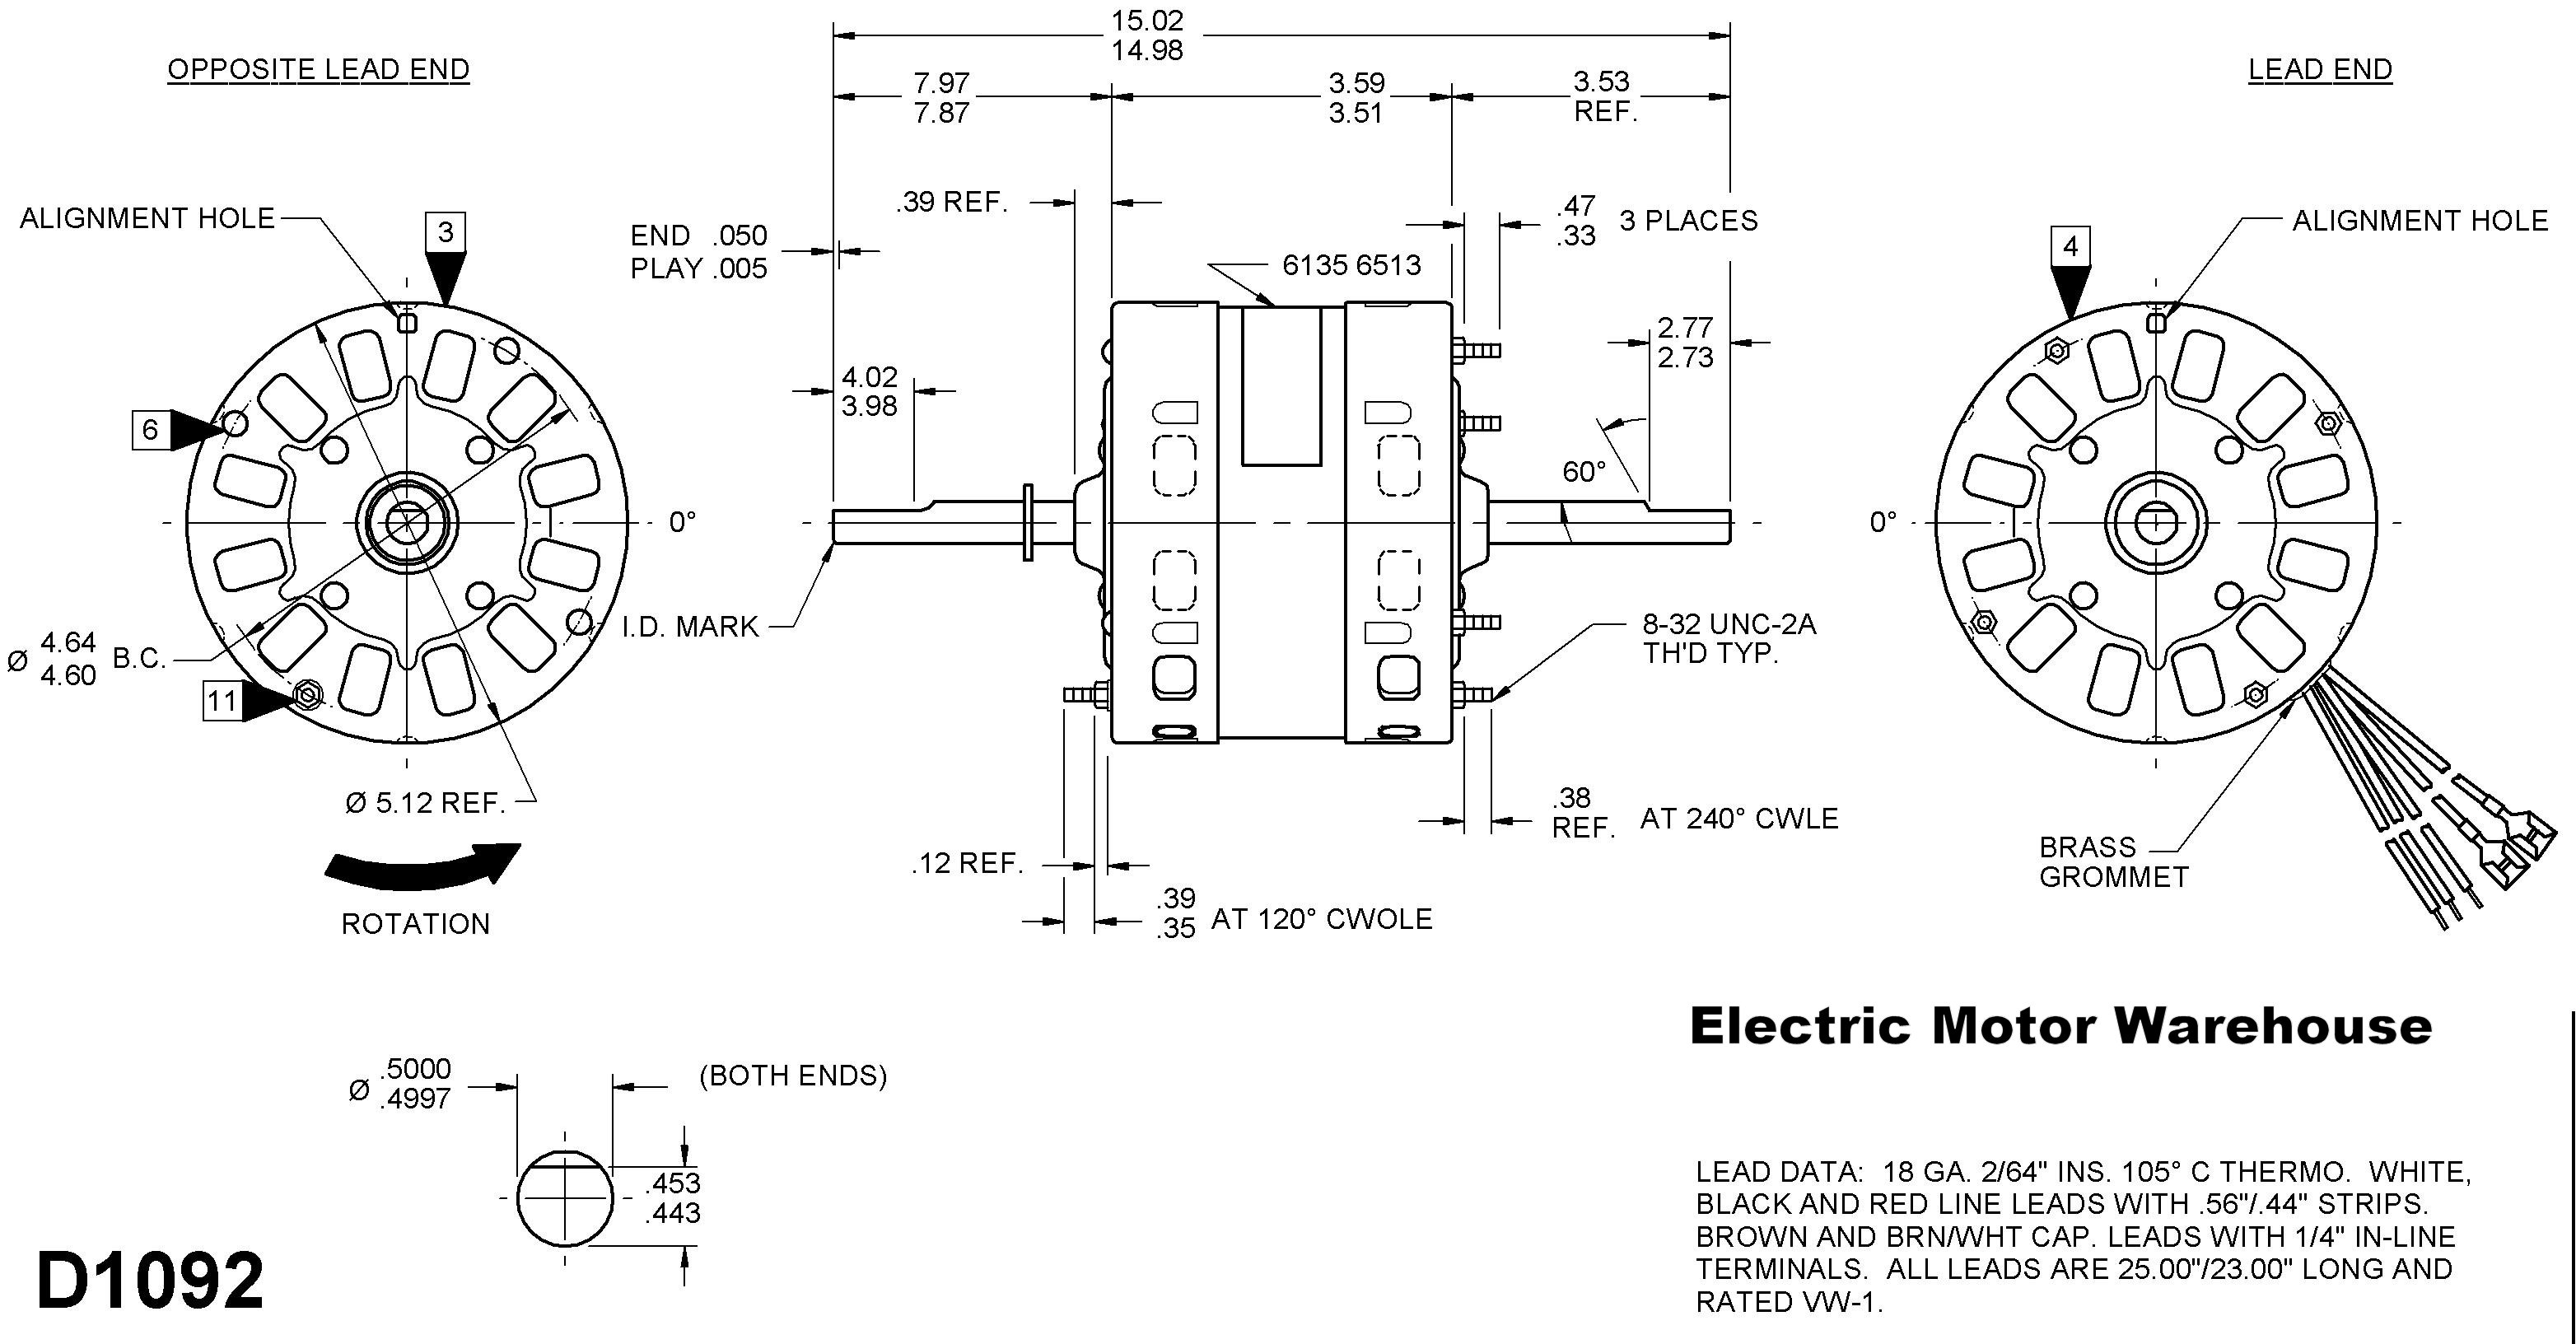 reversing split phase motor wiring diagram redarc bcdc century 1 2 hp d1026 220 libraryd1092 drawing 3 115v 1625 rpm speed